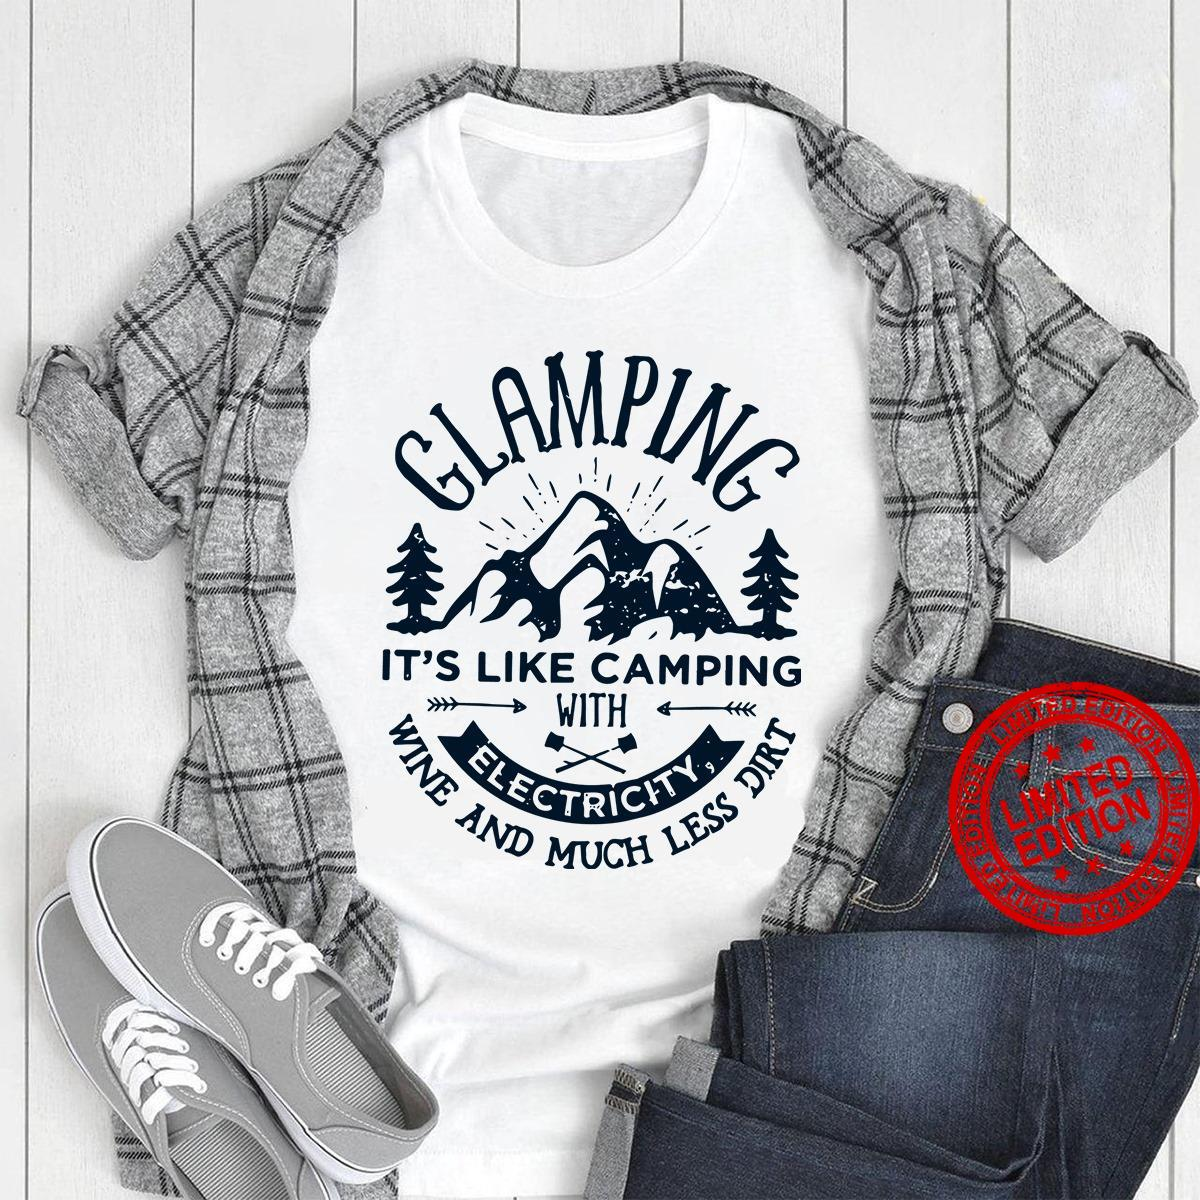 Glamping It's Like Camping With Electricity Wine And Much Less Dirt Shirt